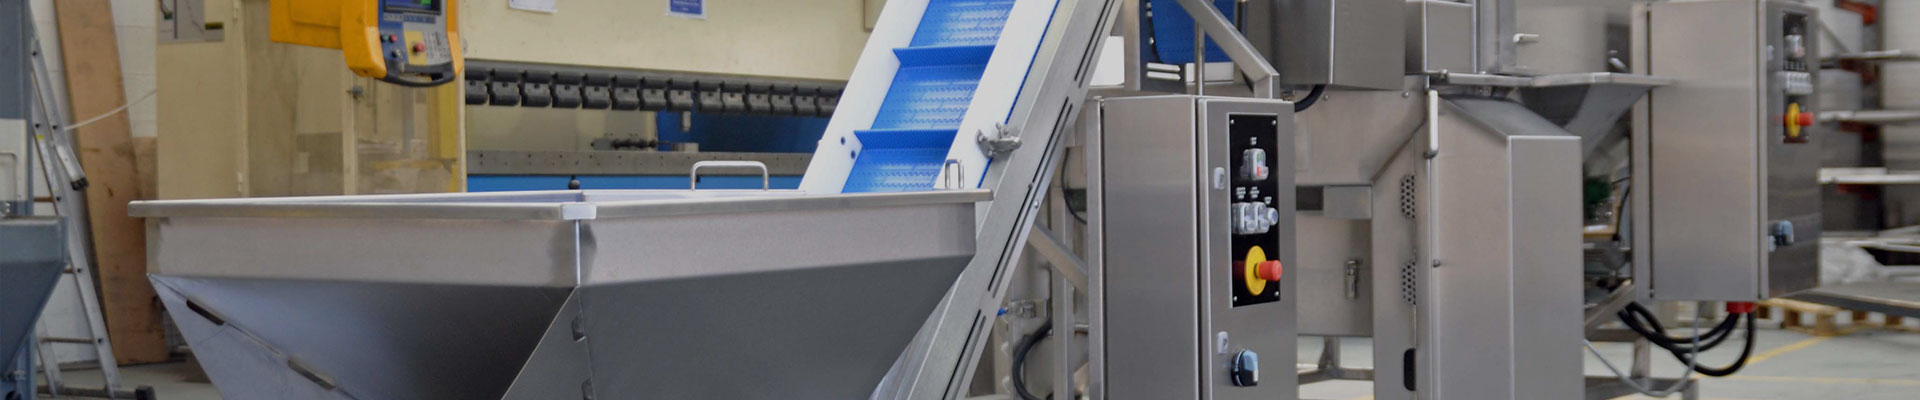 food processing machine manufacturers